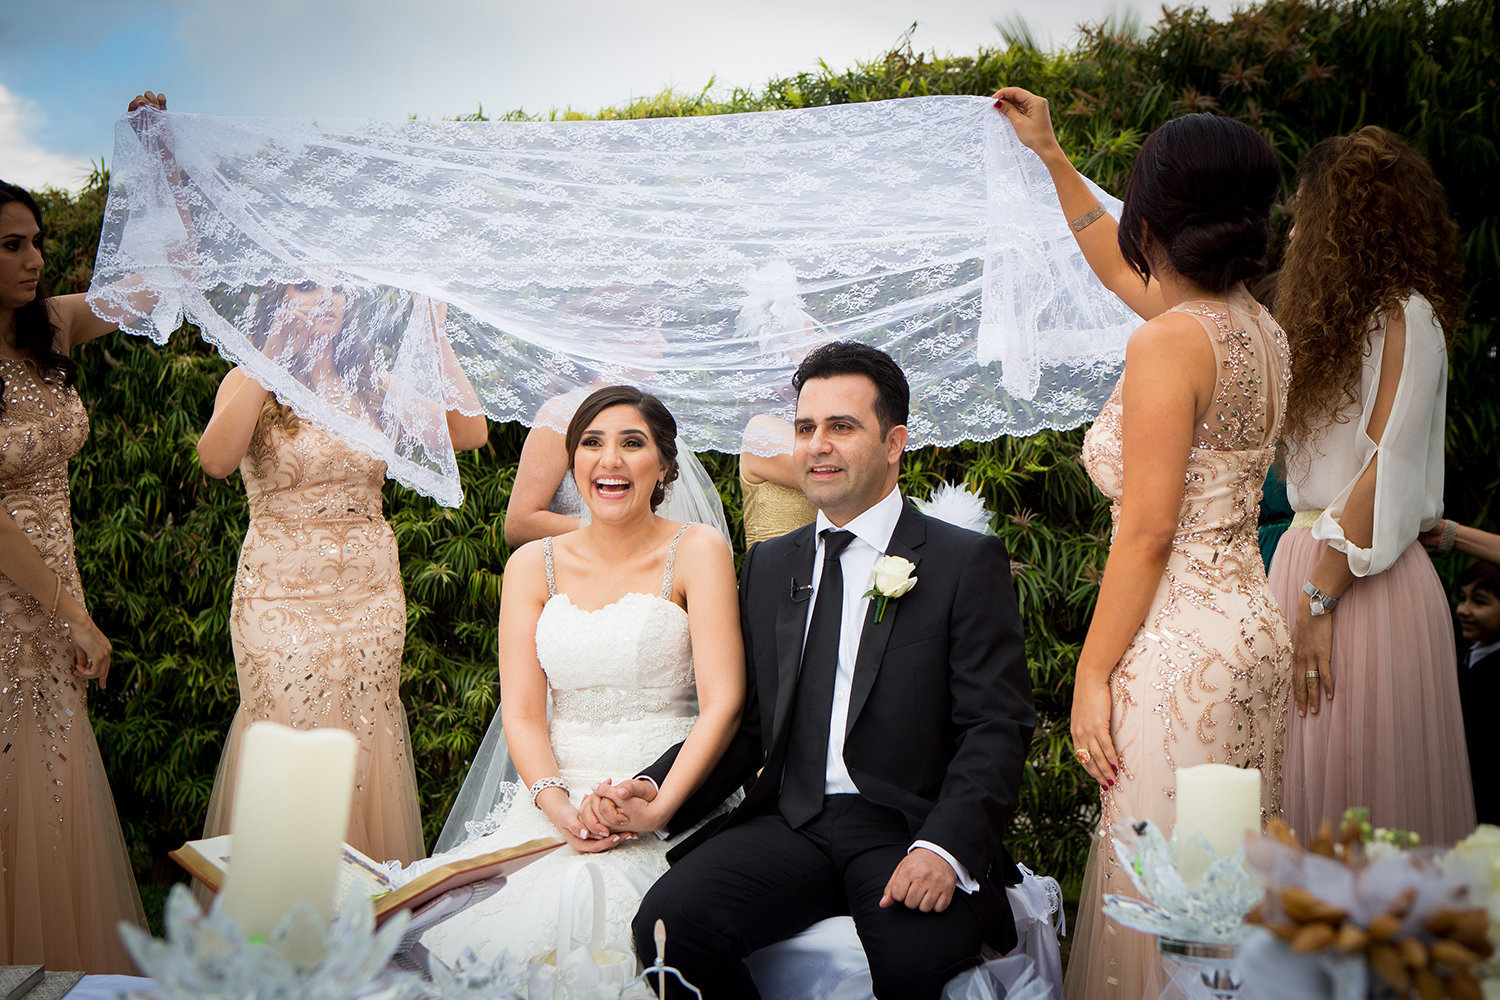 sofreyé aghd canopy |  Persian wedding ceremony in San Diego